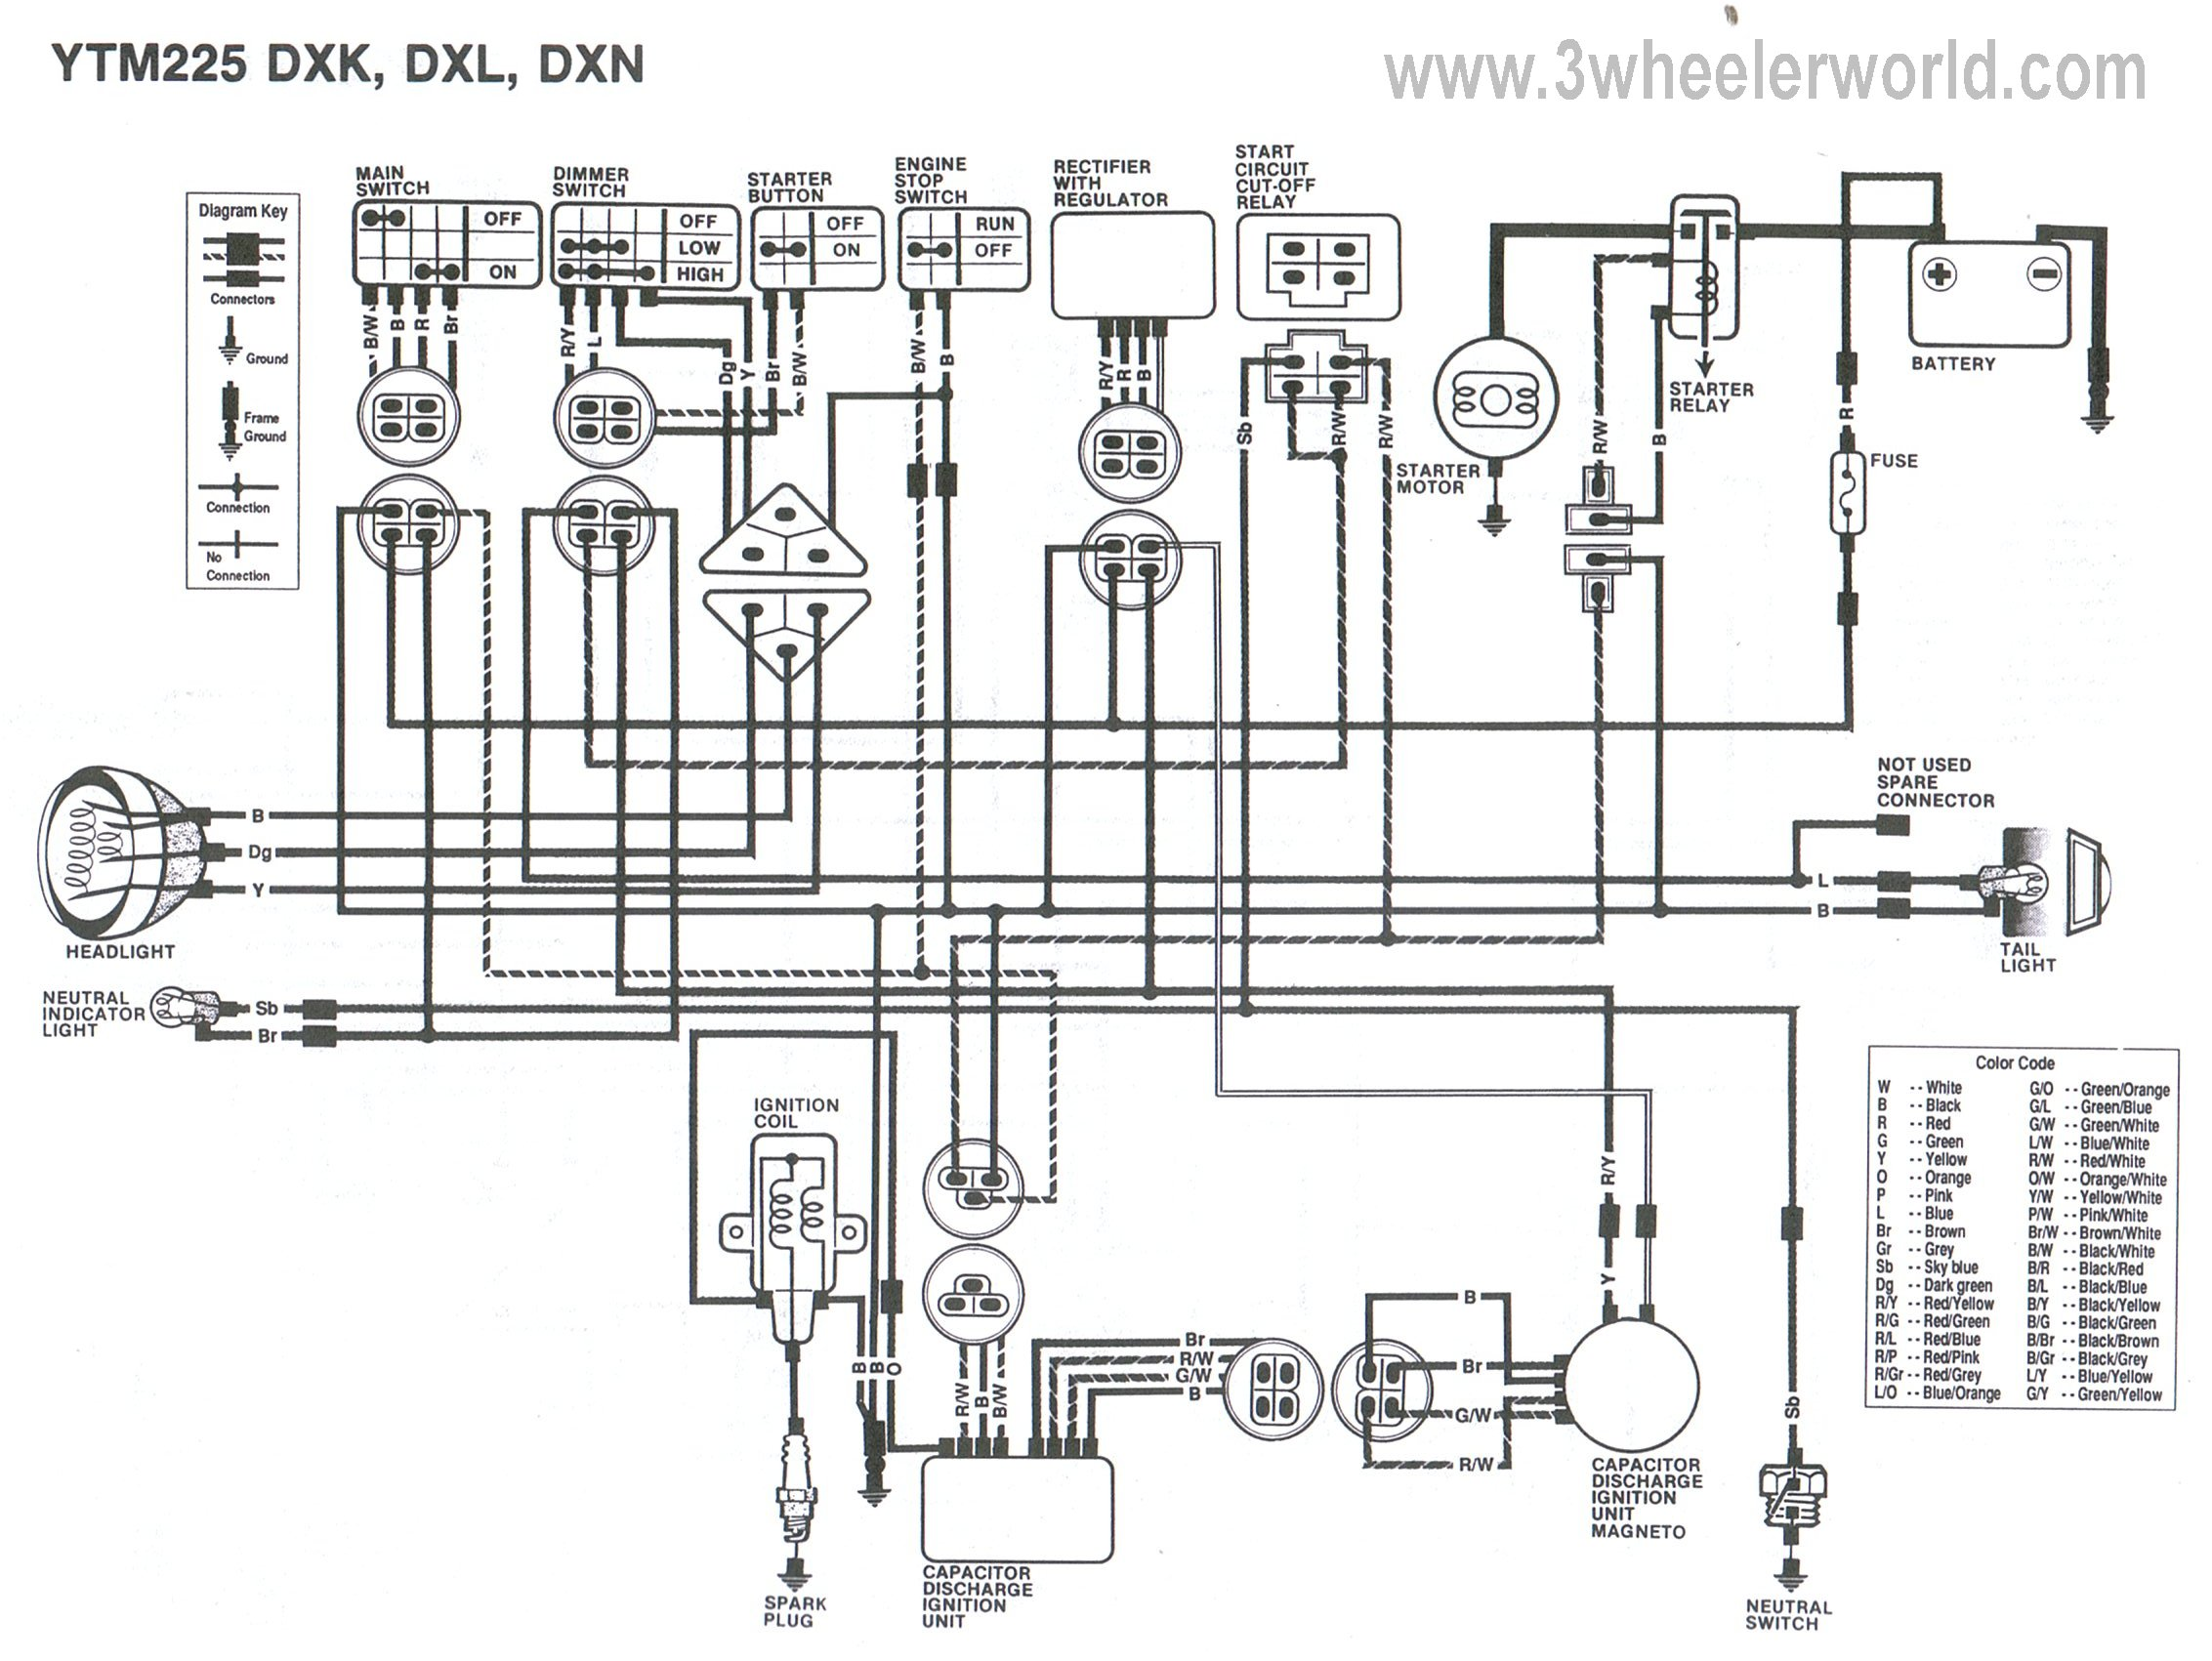 fjr wiring diagram yamaha 225dx engine diagram yamaha wiring diagrams